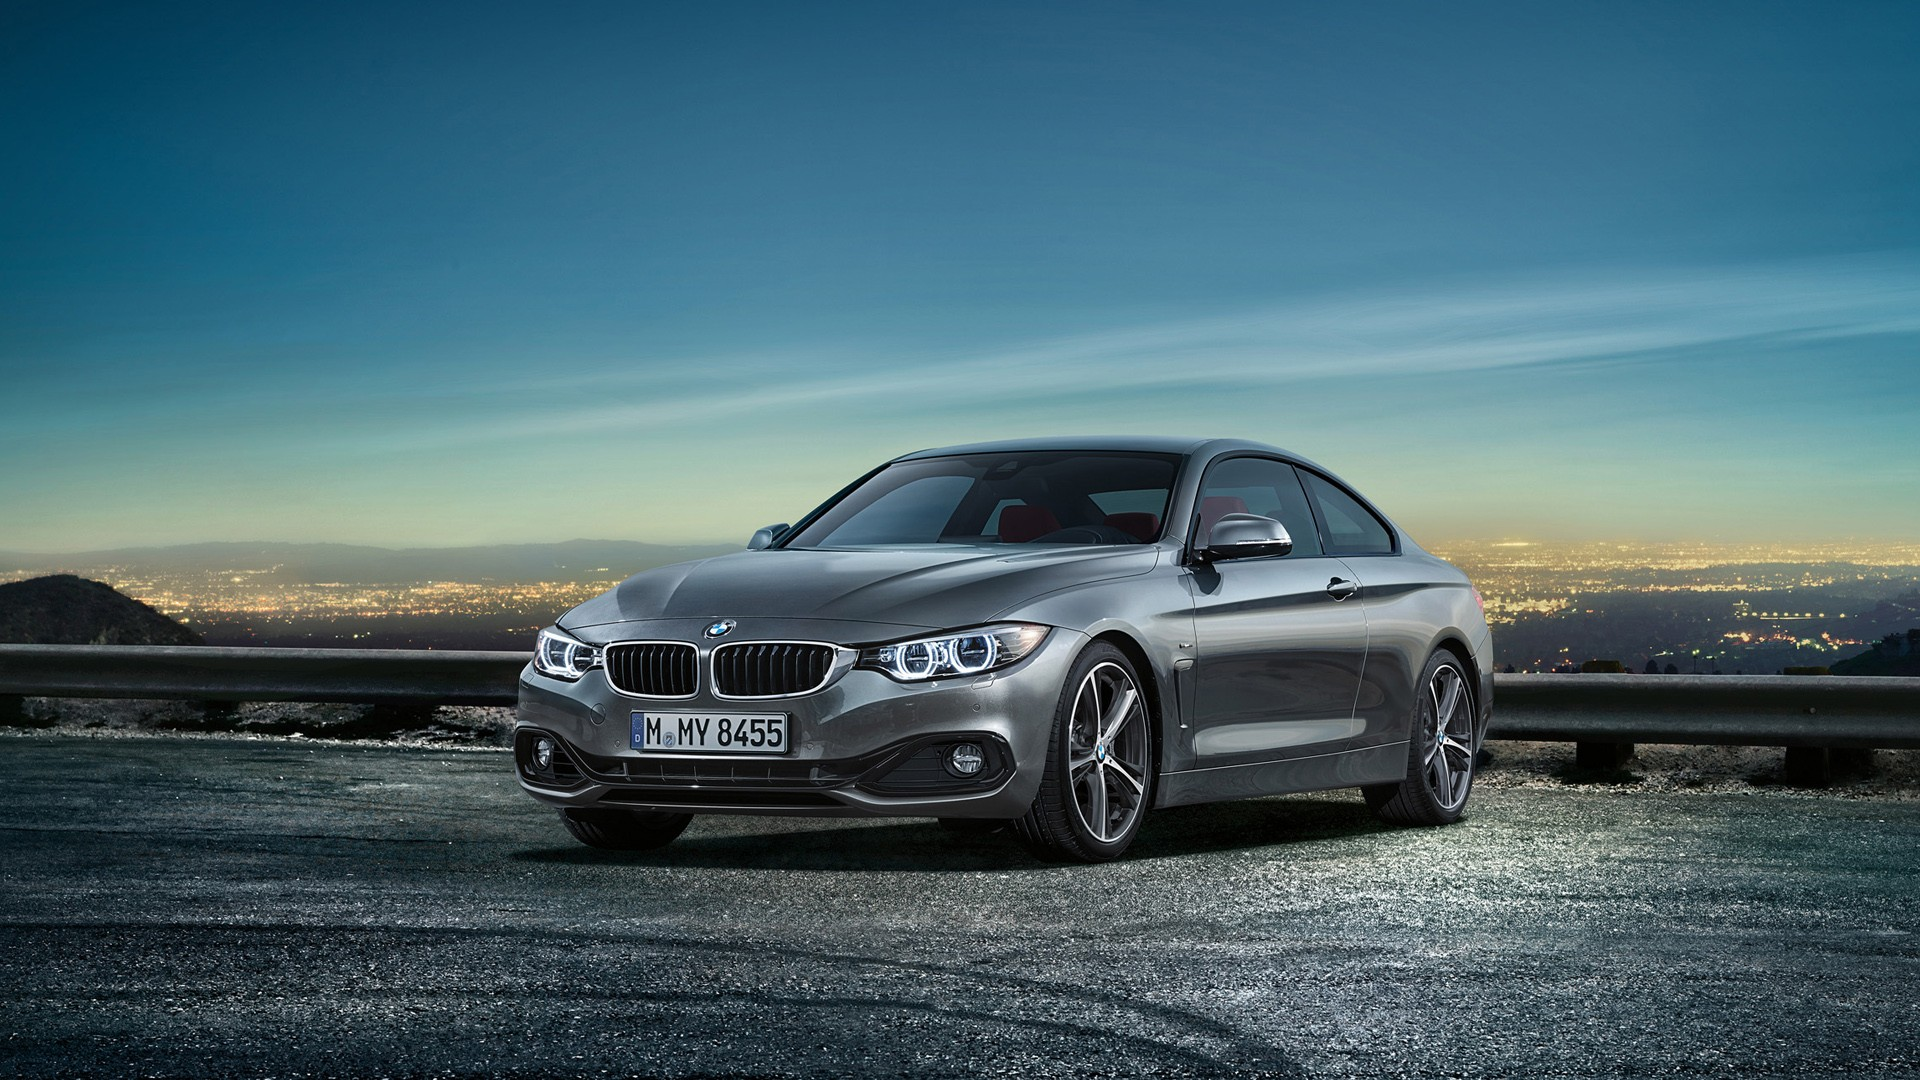 2013 BMW 4 Series Coupe Wallpaper | HD Car Wallpapers | ID ...